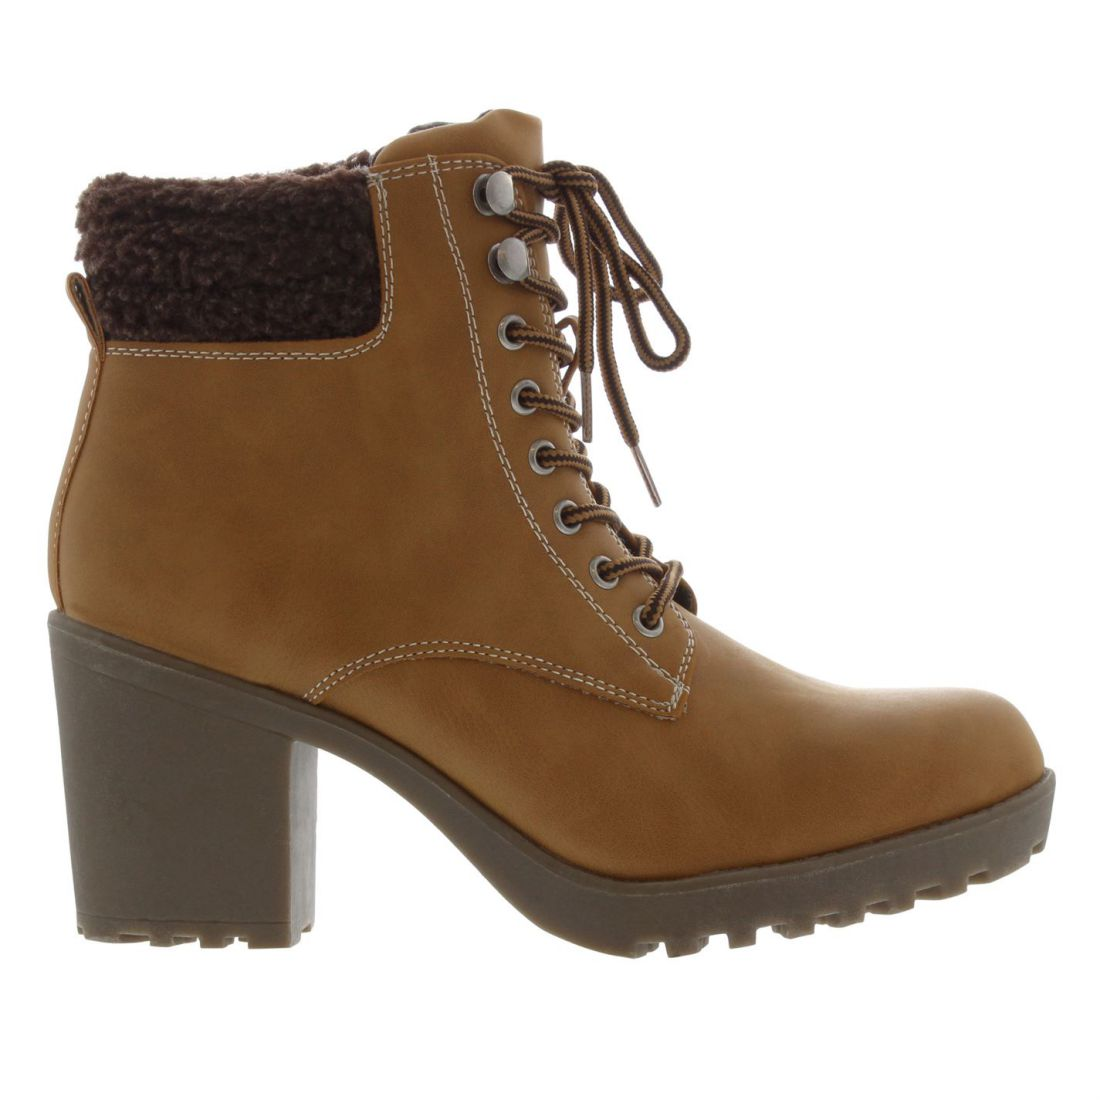 2d8ba852689 SoulCal Womens Luis Boots Heeled Ankle